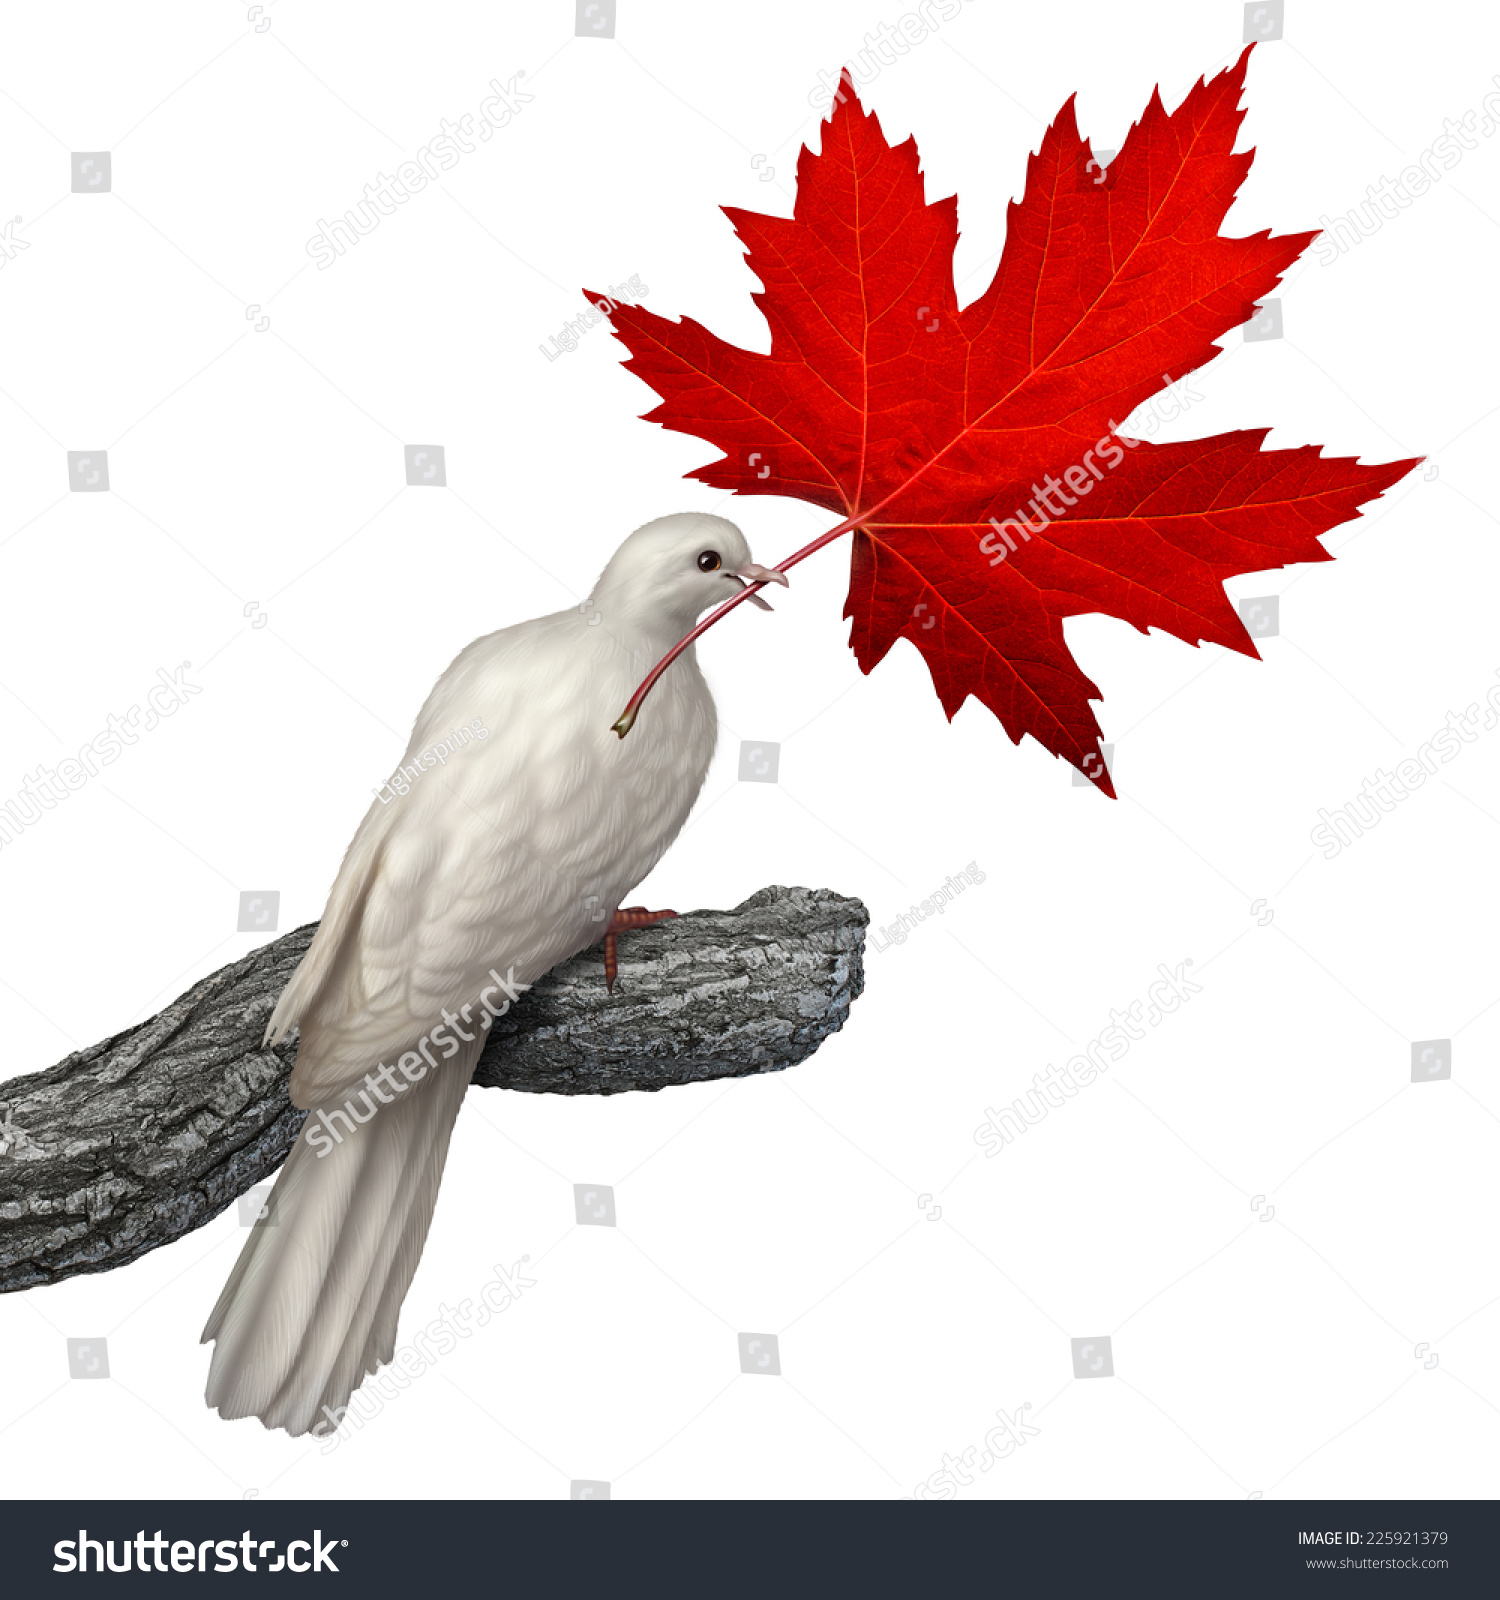 Canada peace concept white dove holding stock illustration canada peace concept as a white dove holding a red maple leaf on a white background biocorpaavc Choice Image